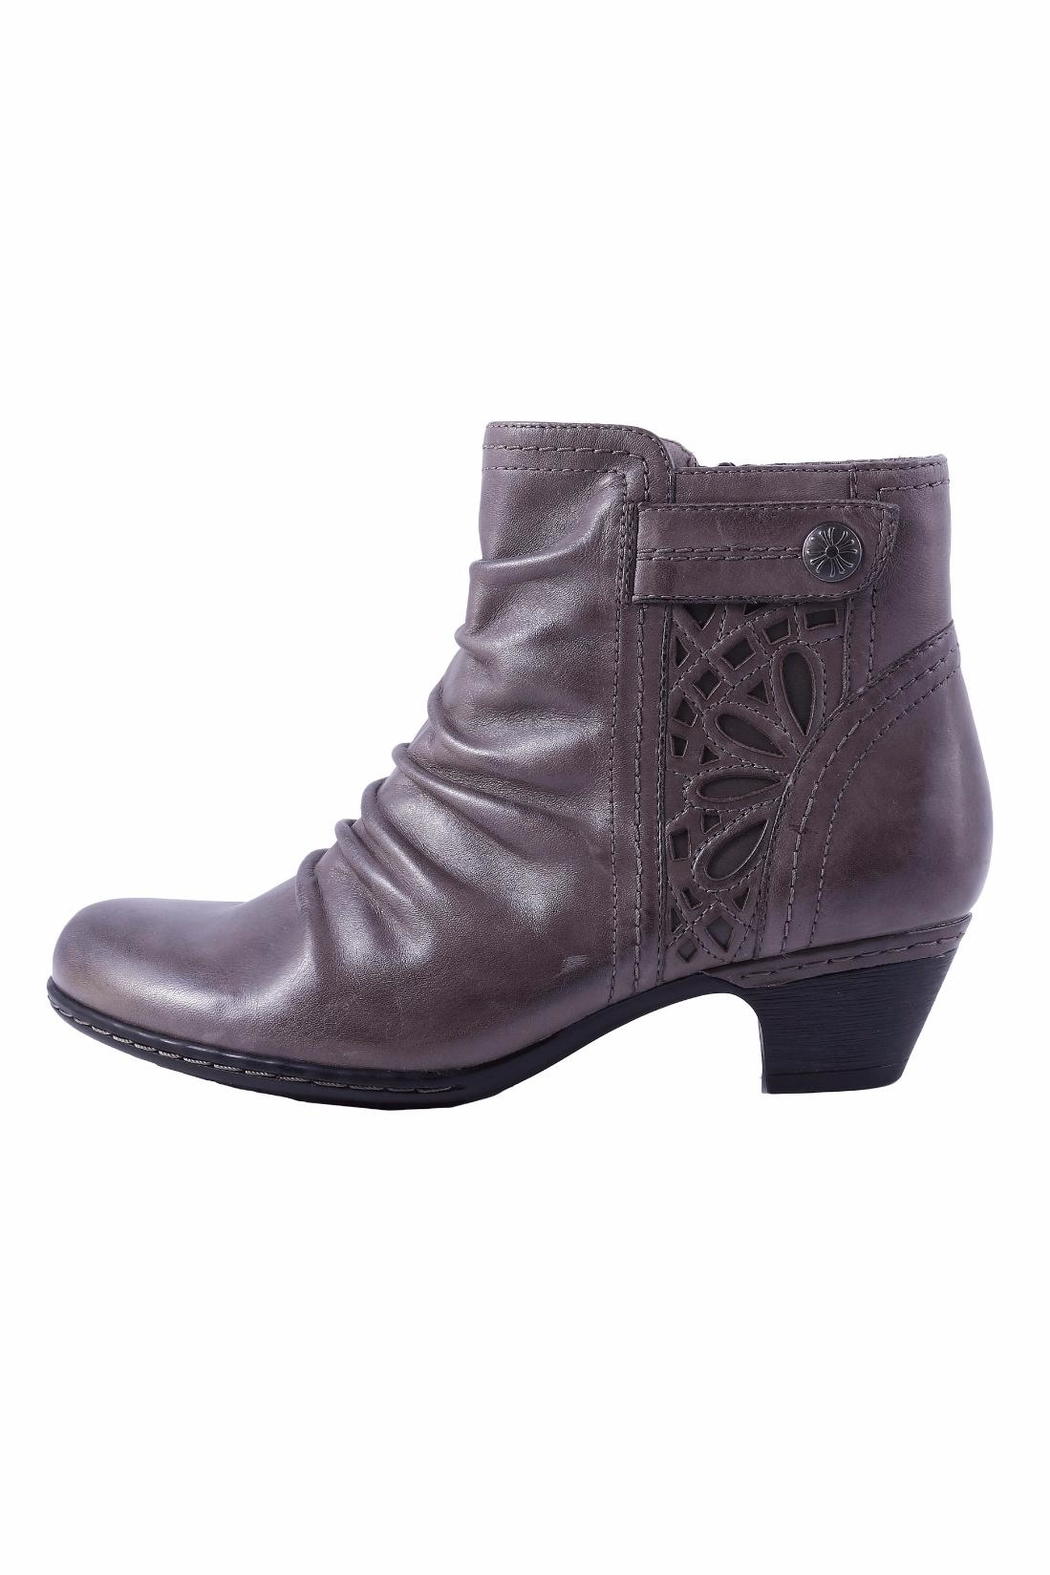 Cobb Hill Abilene Side Zip Bootie - Front Cropped Image